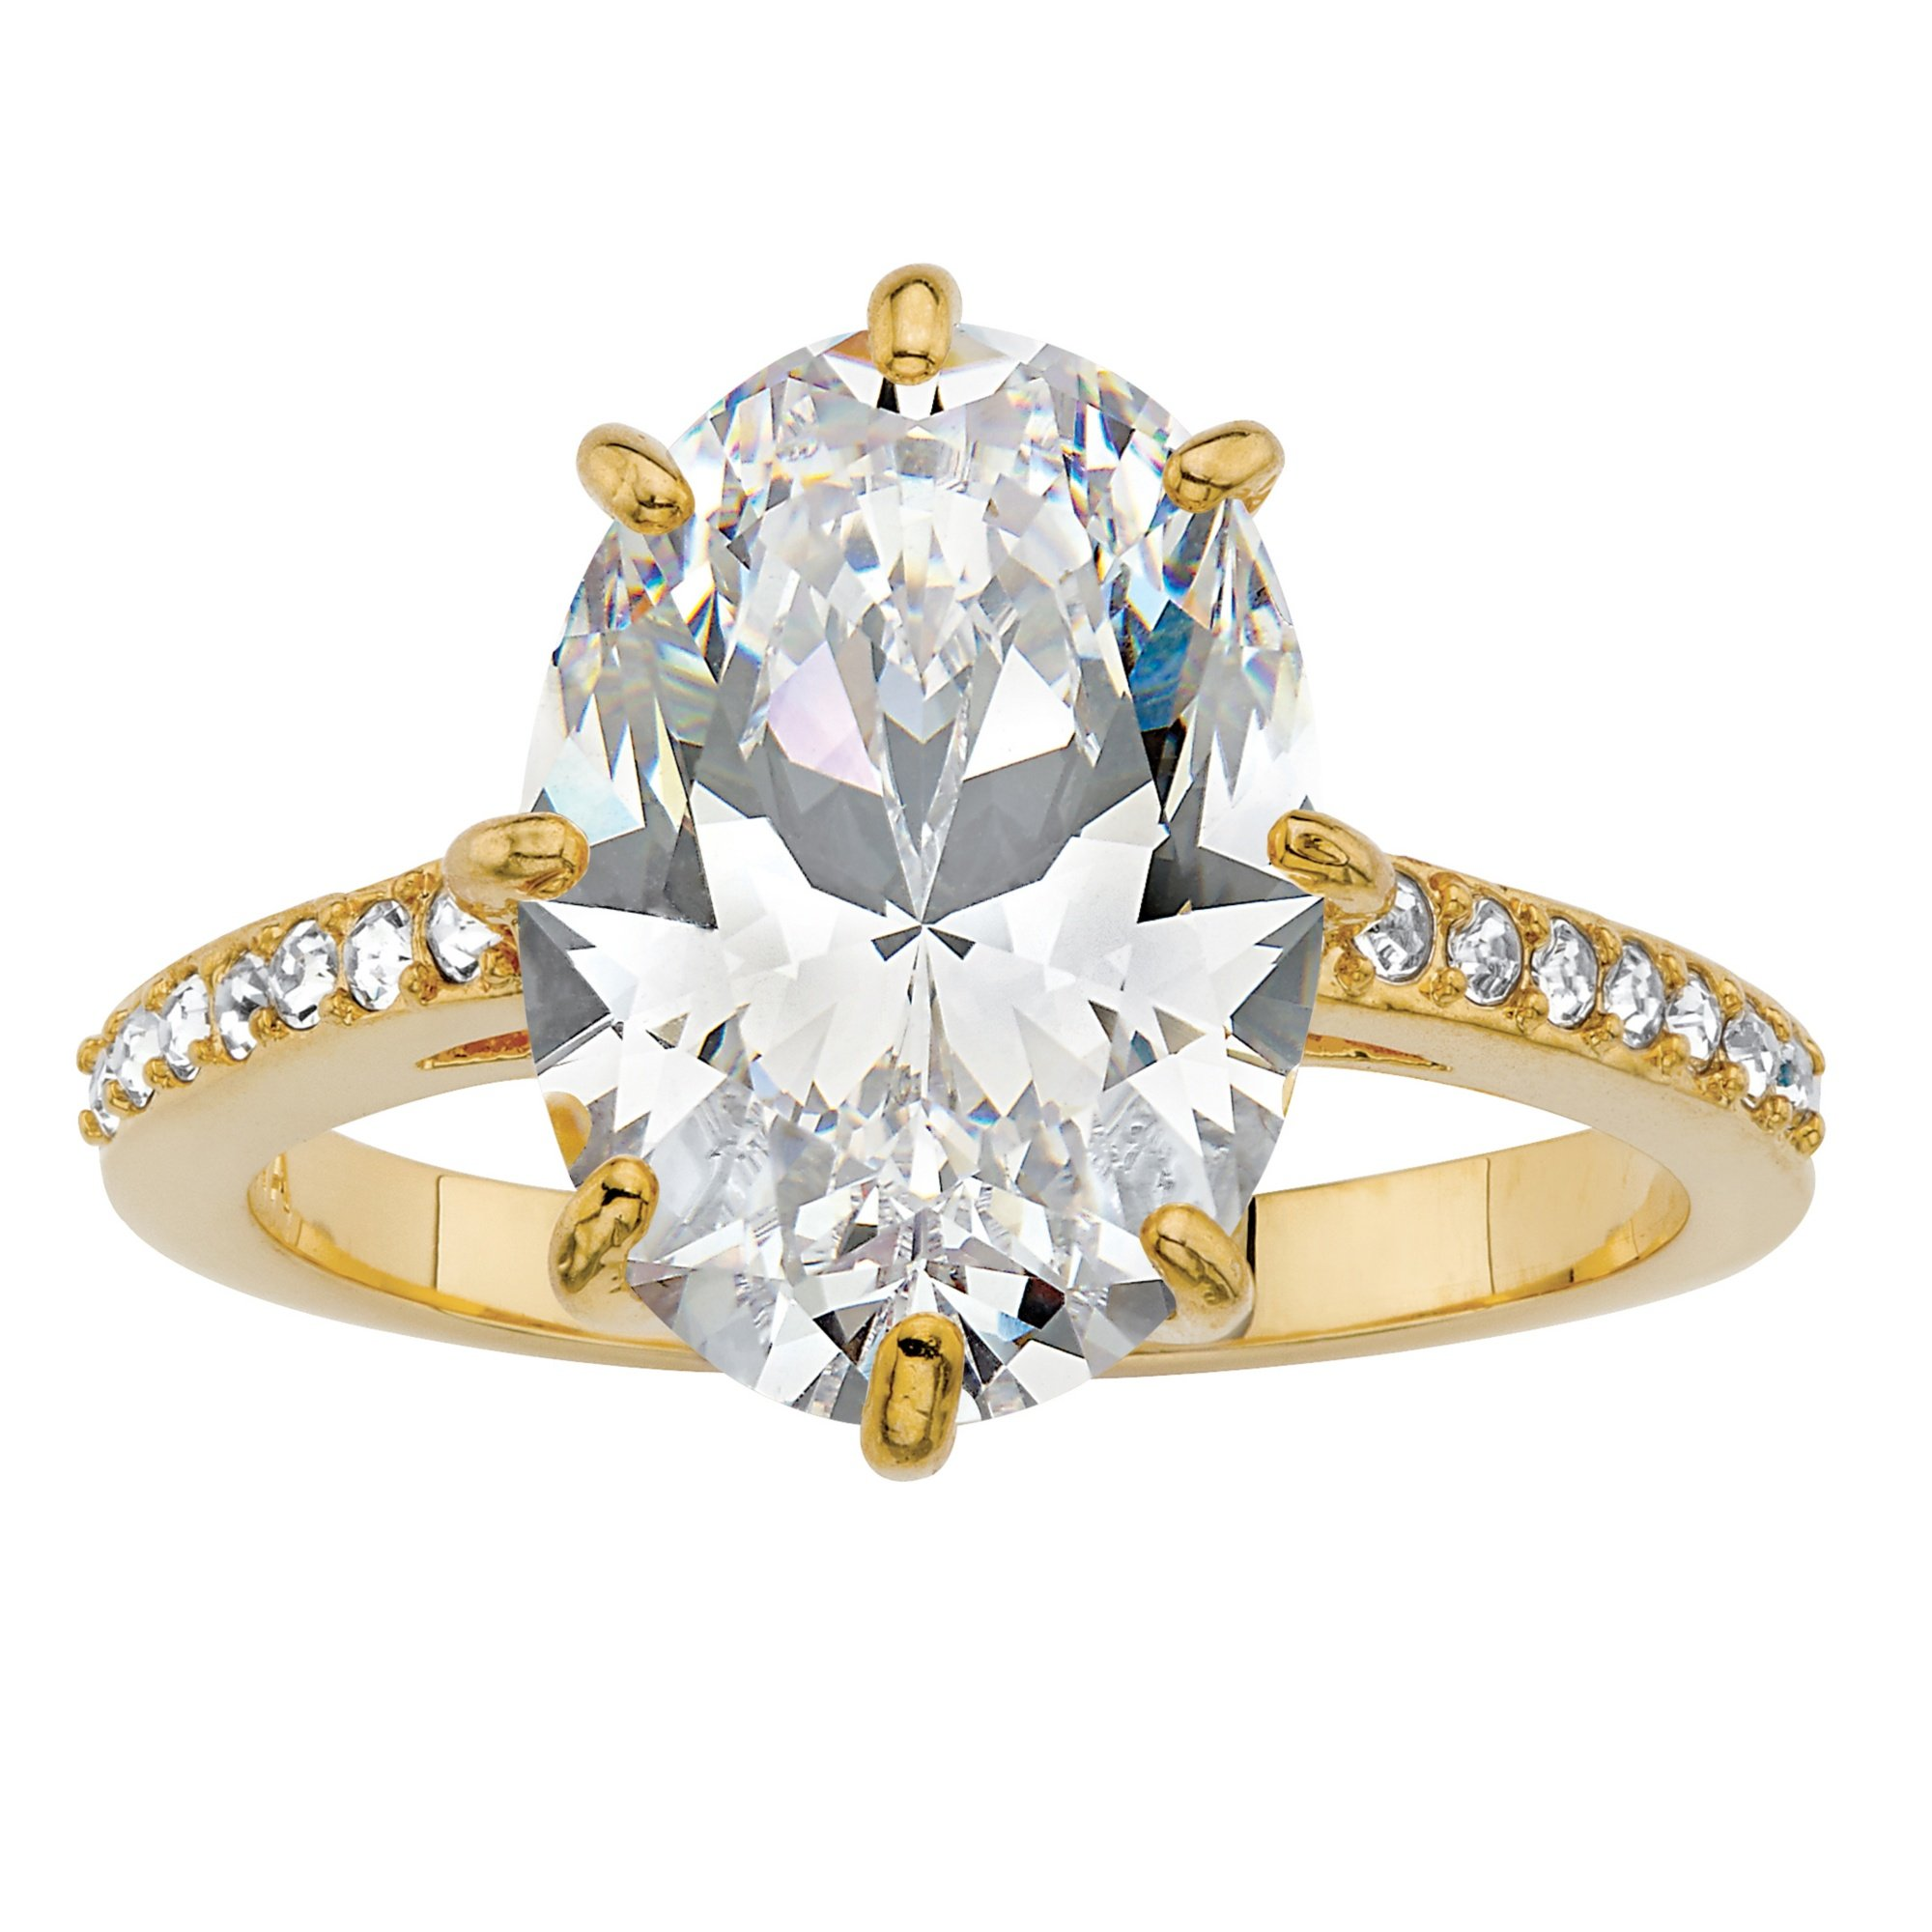 14K Gold-plated Cubic Zirconia and Crystal Engagement Ring Made With Swarovski Elements Size 9